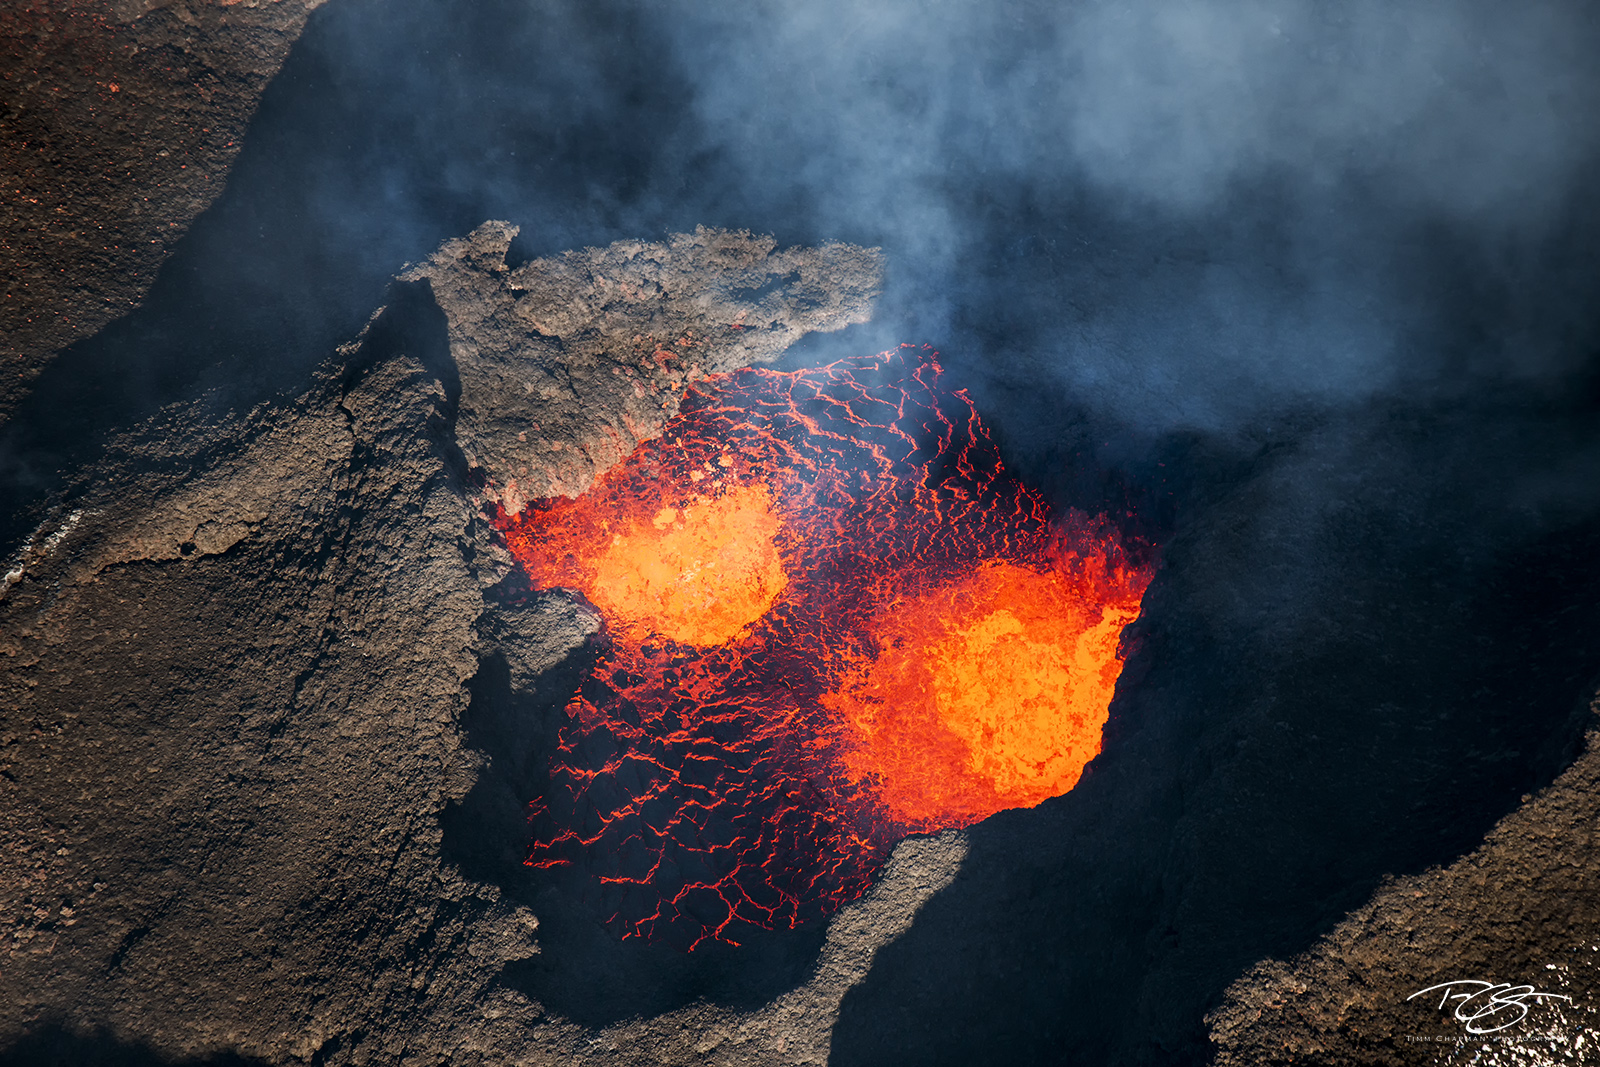 Iceland, volcano, eruption, lava, molten, bardarbunga, the secret life of walter mitty, game of thrones, jawa, photo